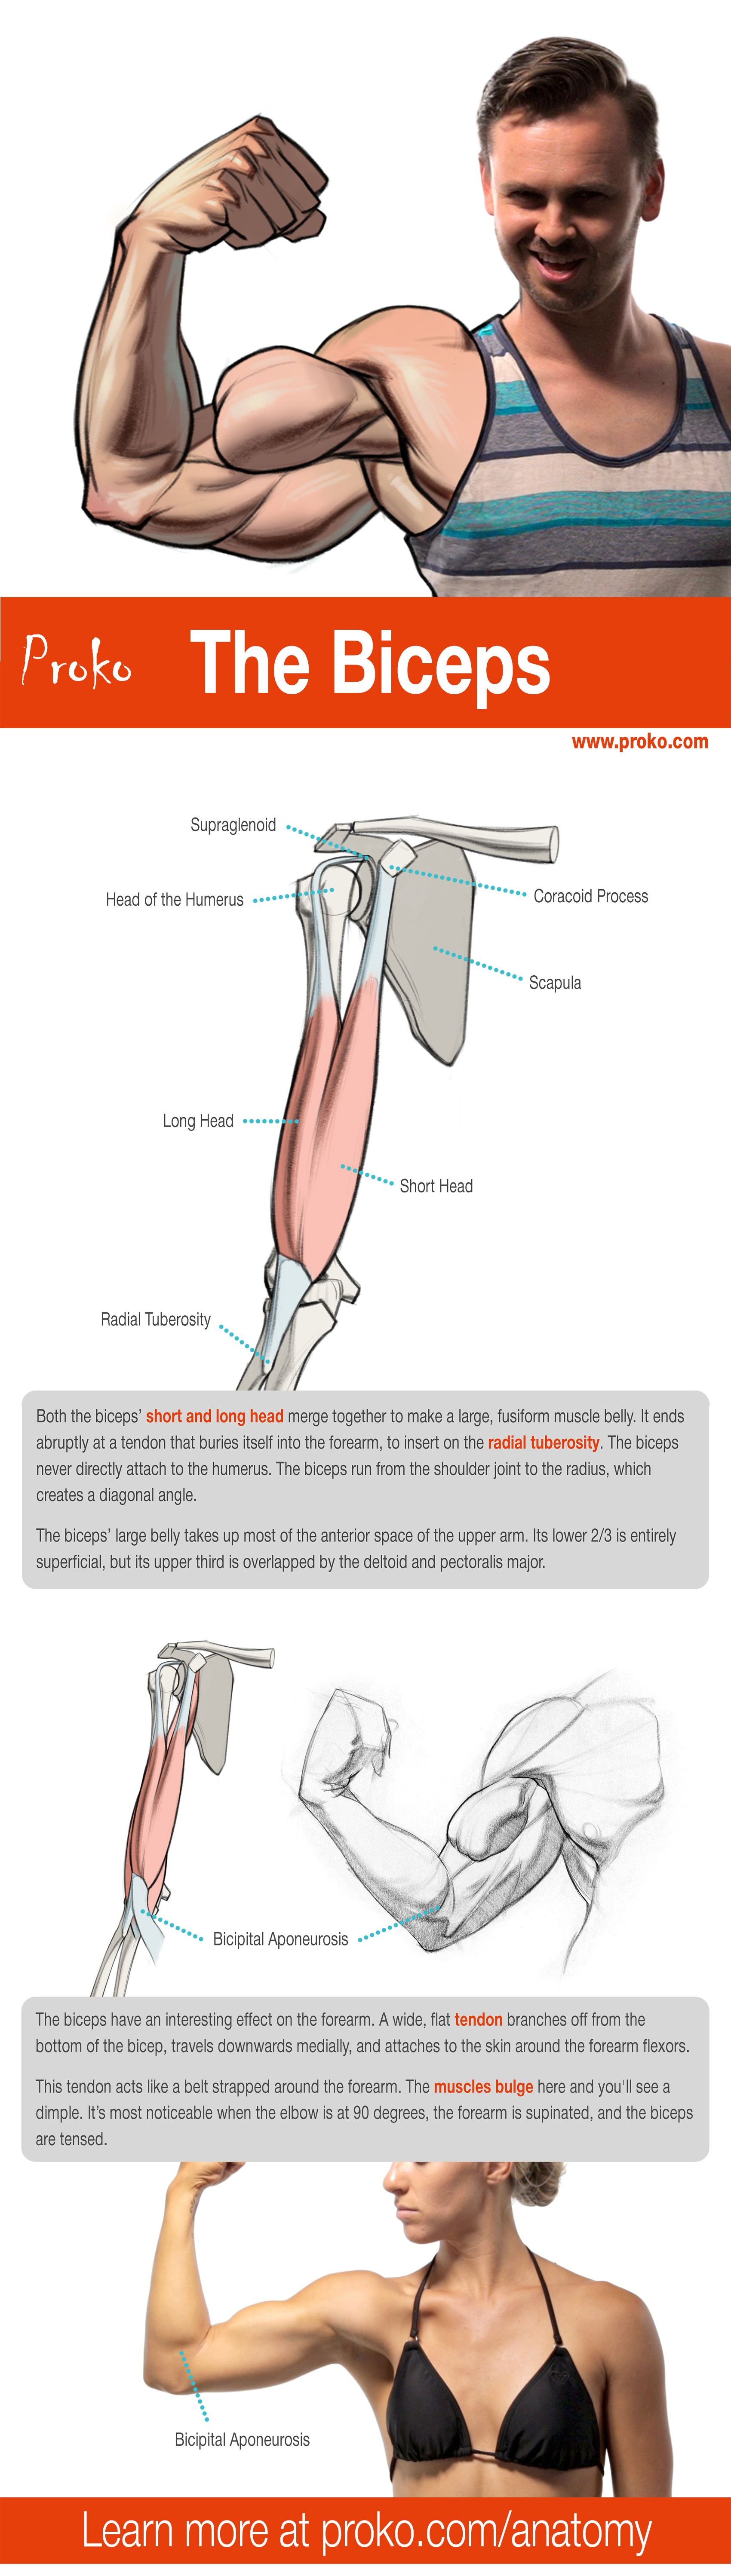 Anatomy of the Human Body for Artists Course | Anatomy for Artists ...